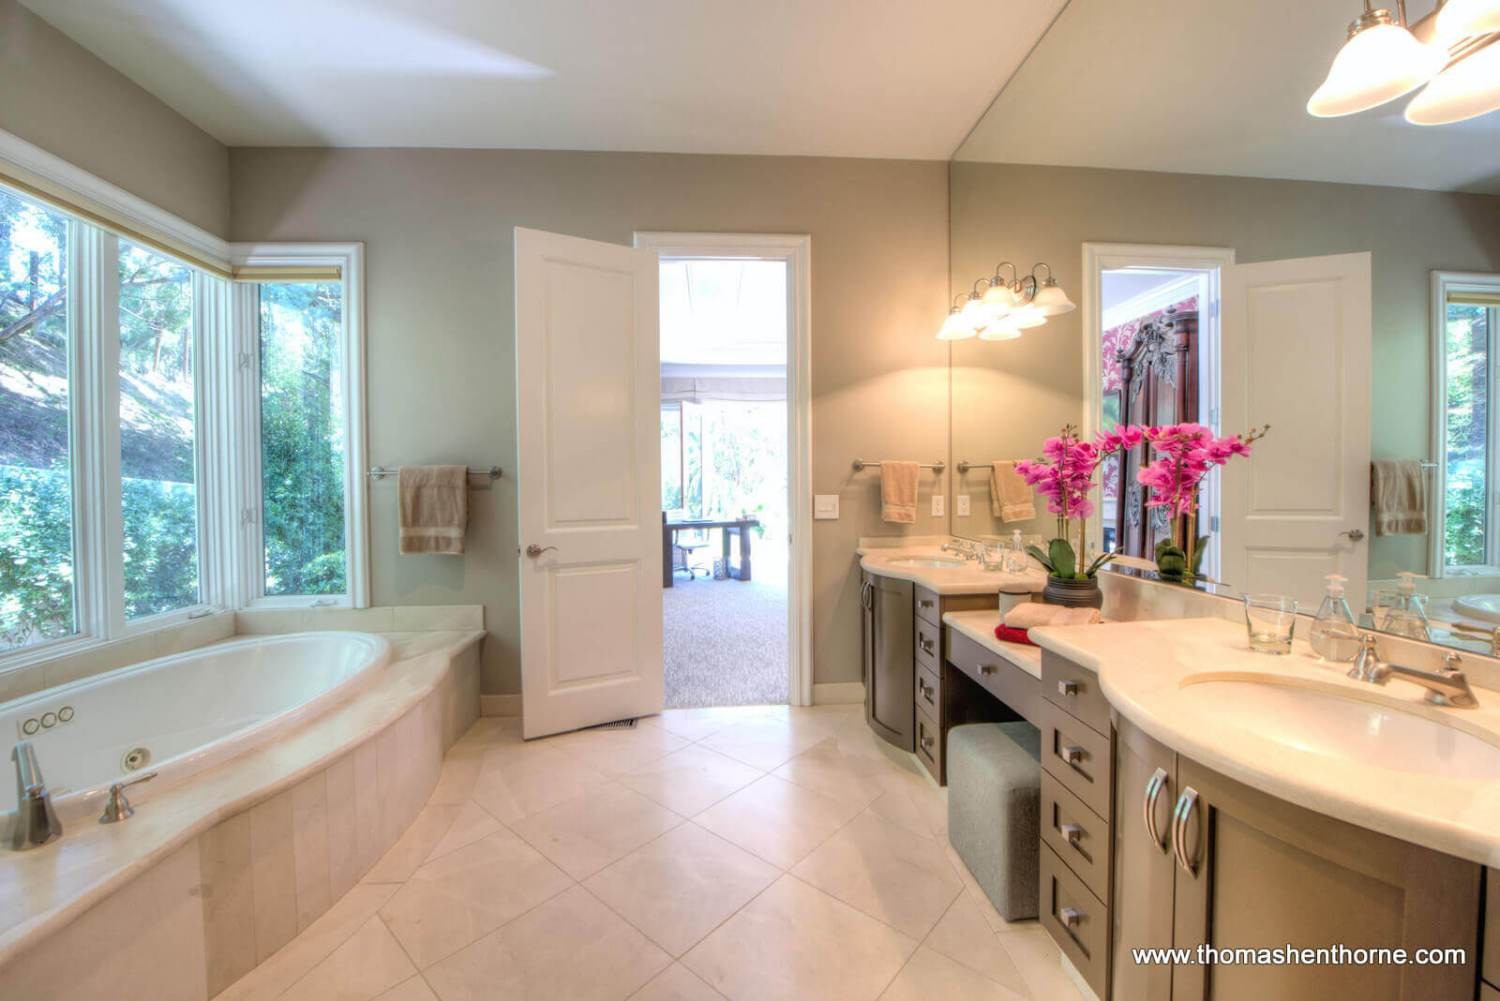 Master bathroom with tub and dual vanities